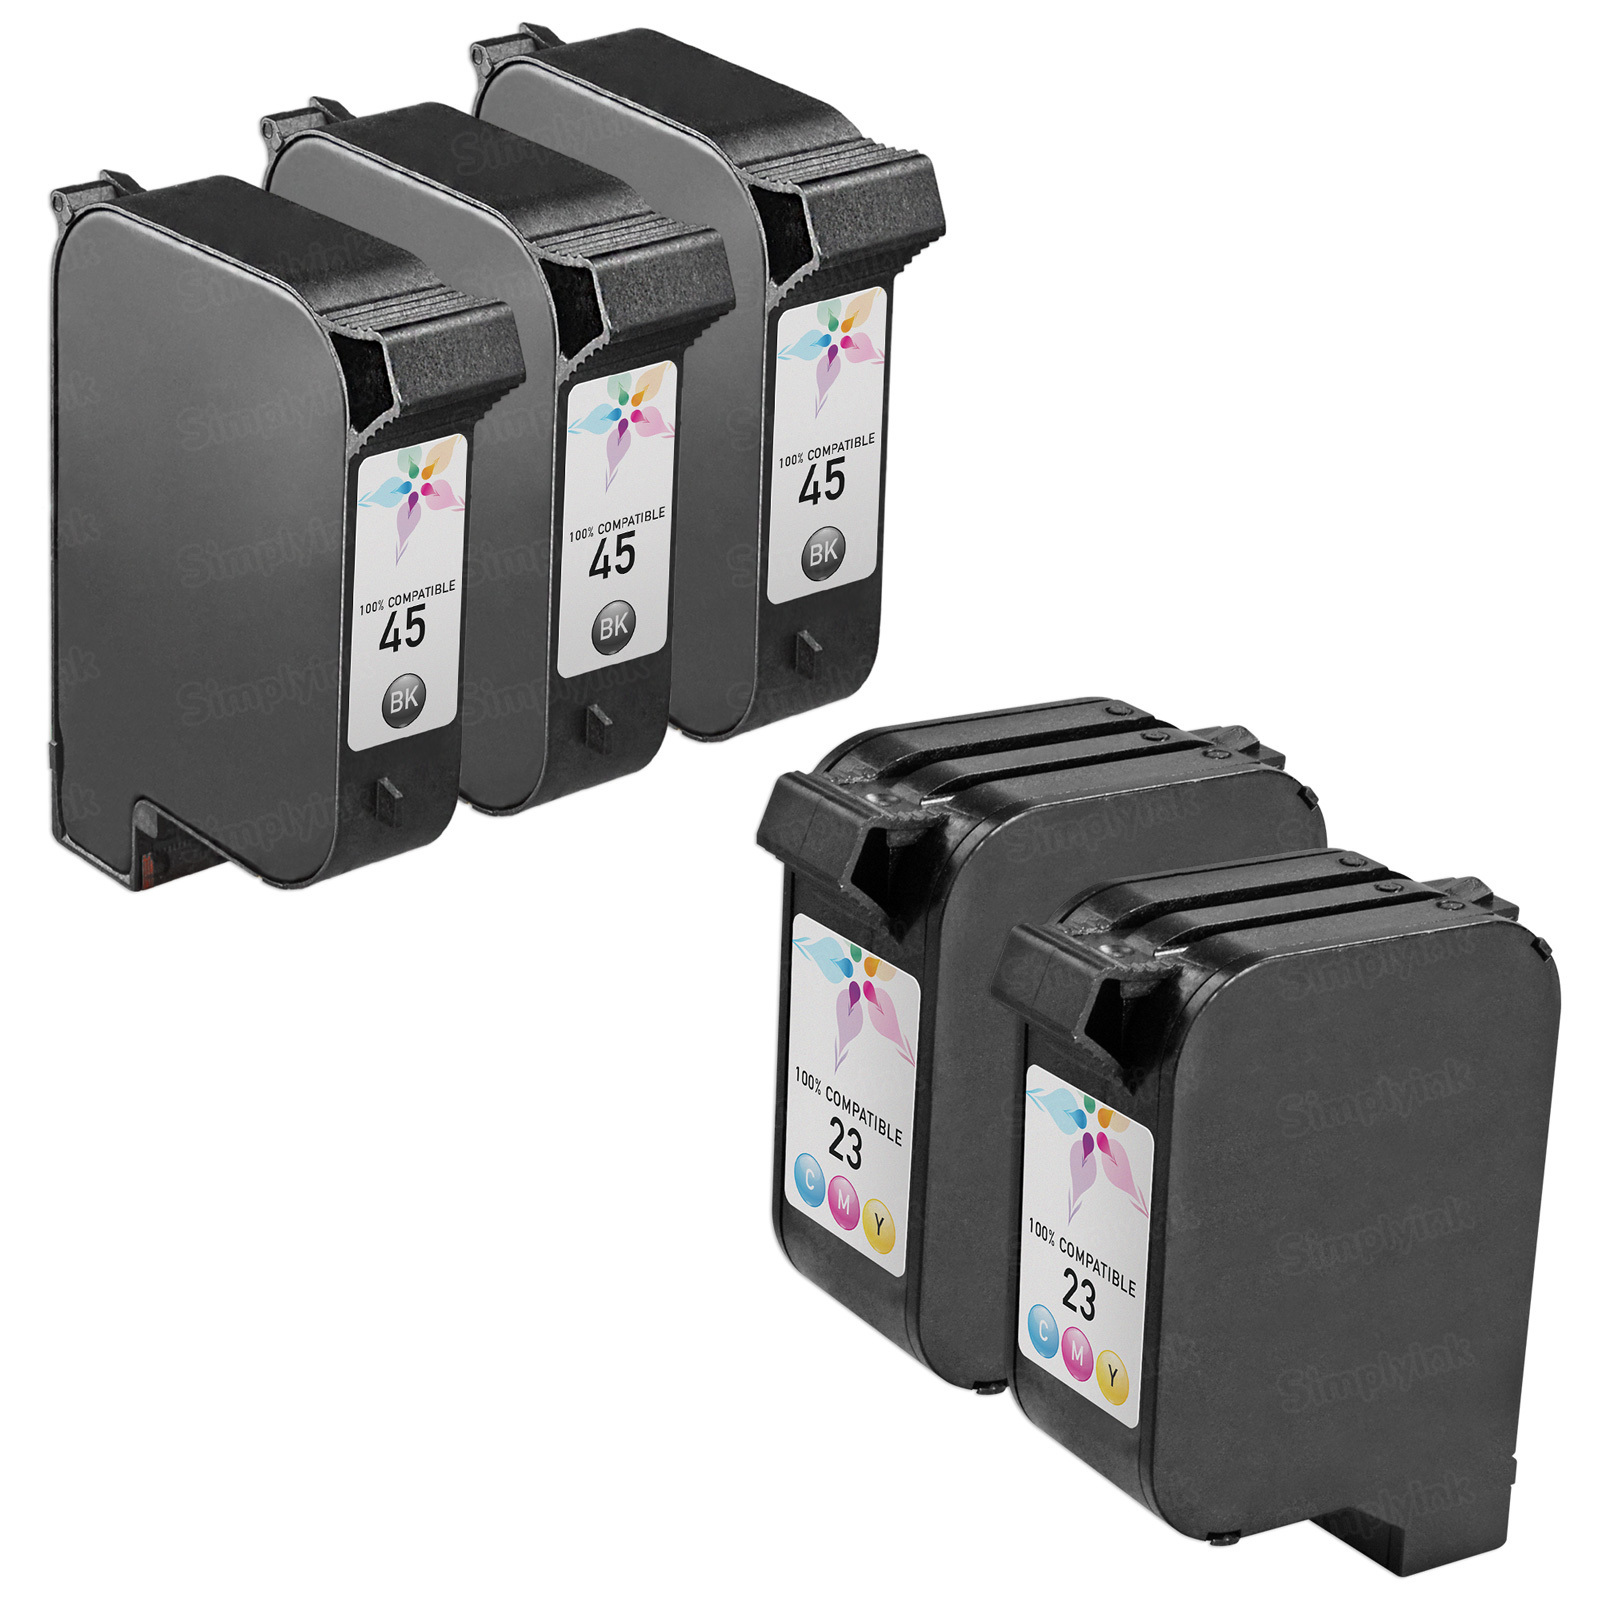 Remanufactured Bulk Set of 5 Ink Cartridges to Replace HP 45 & HP 23 (3 BK, 2 CLR)